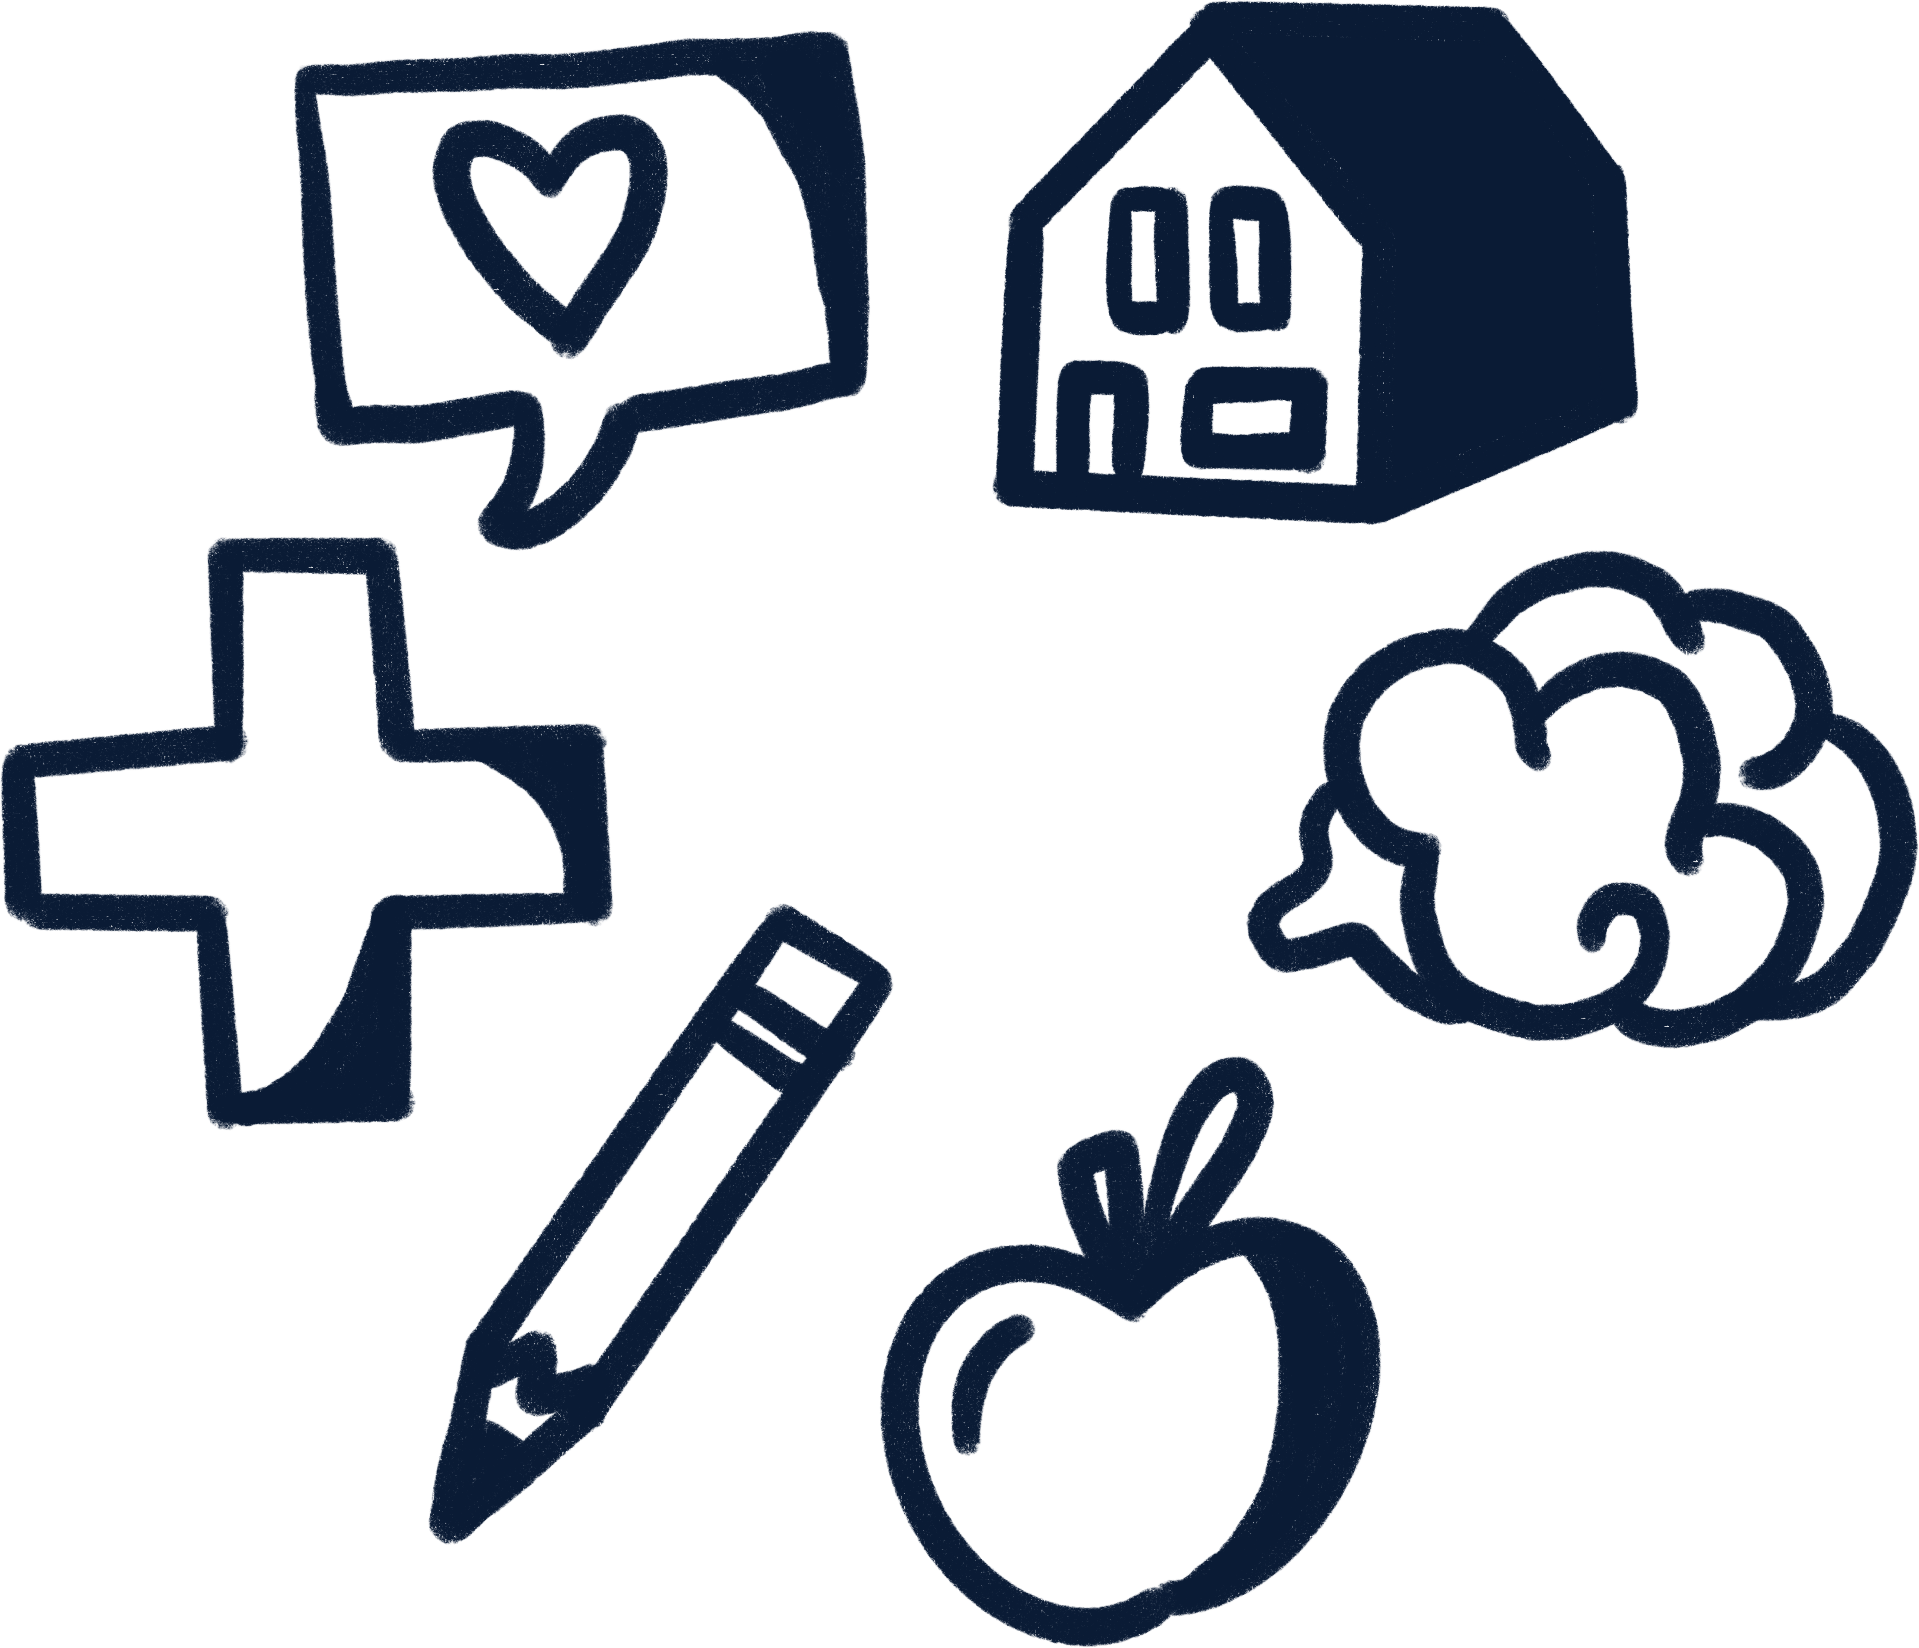 icons of a medicine cross, pencil, apple,, broccoli, house, and speech bubble